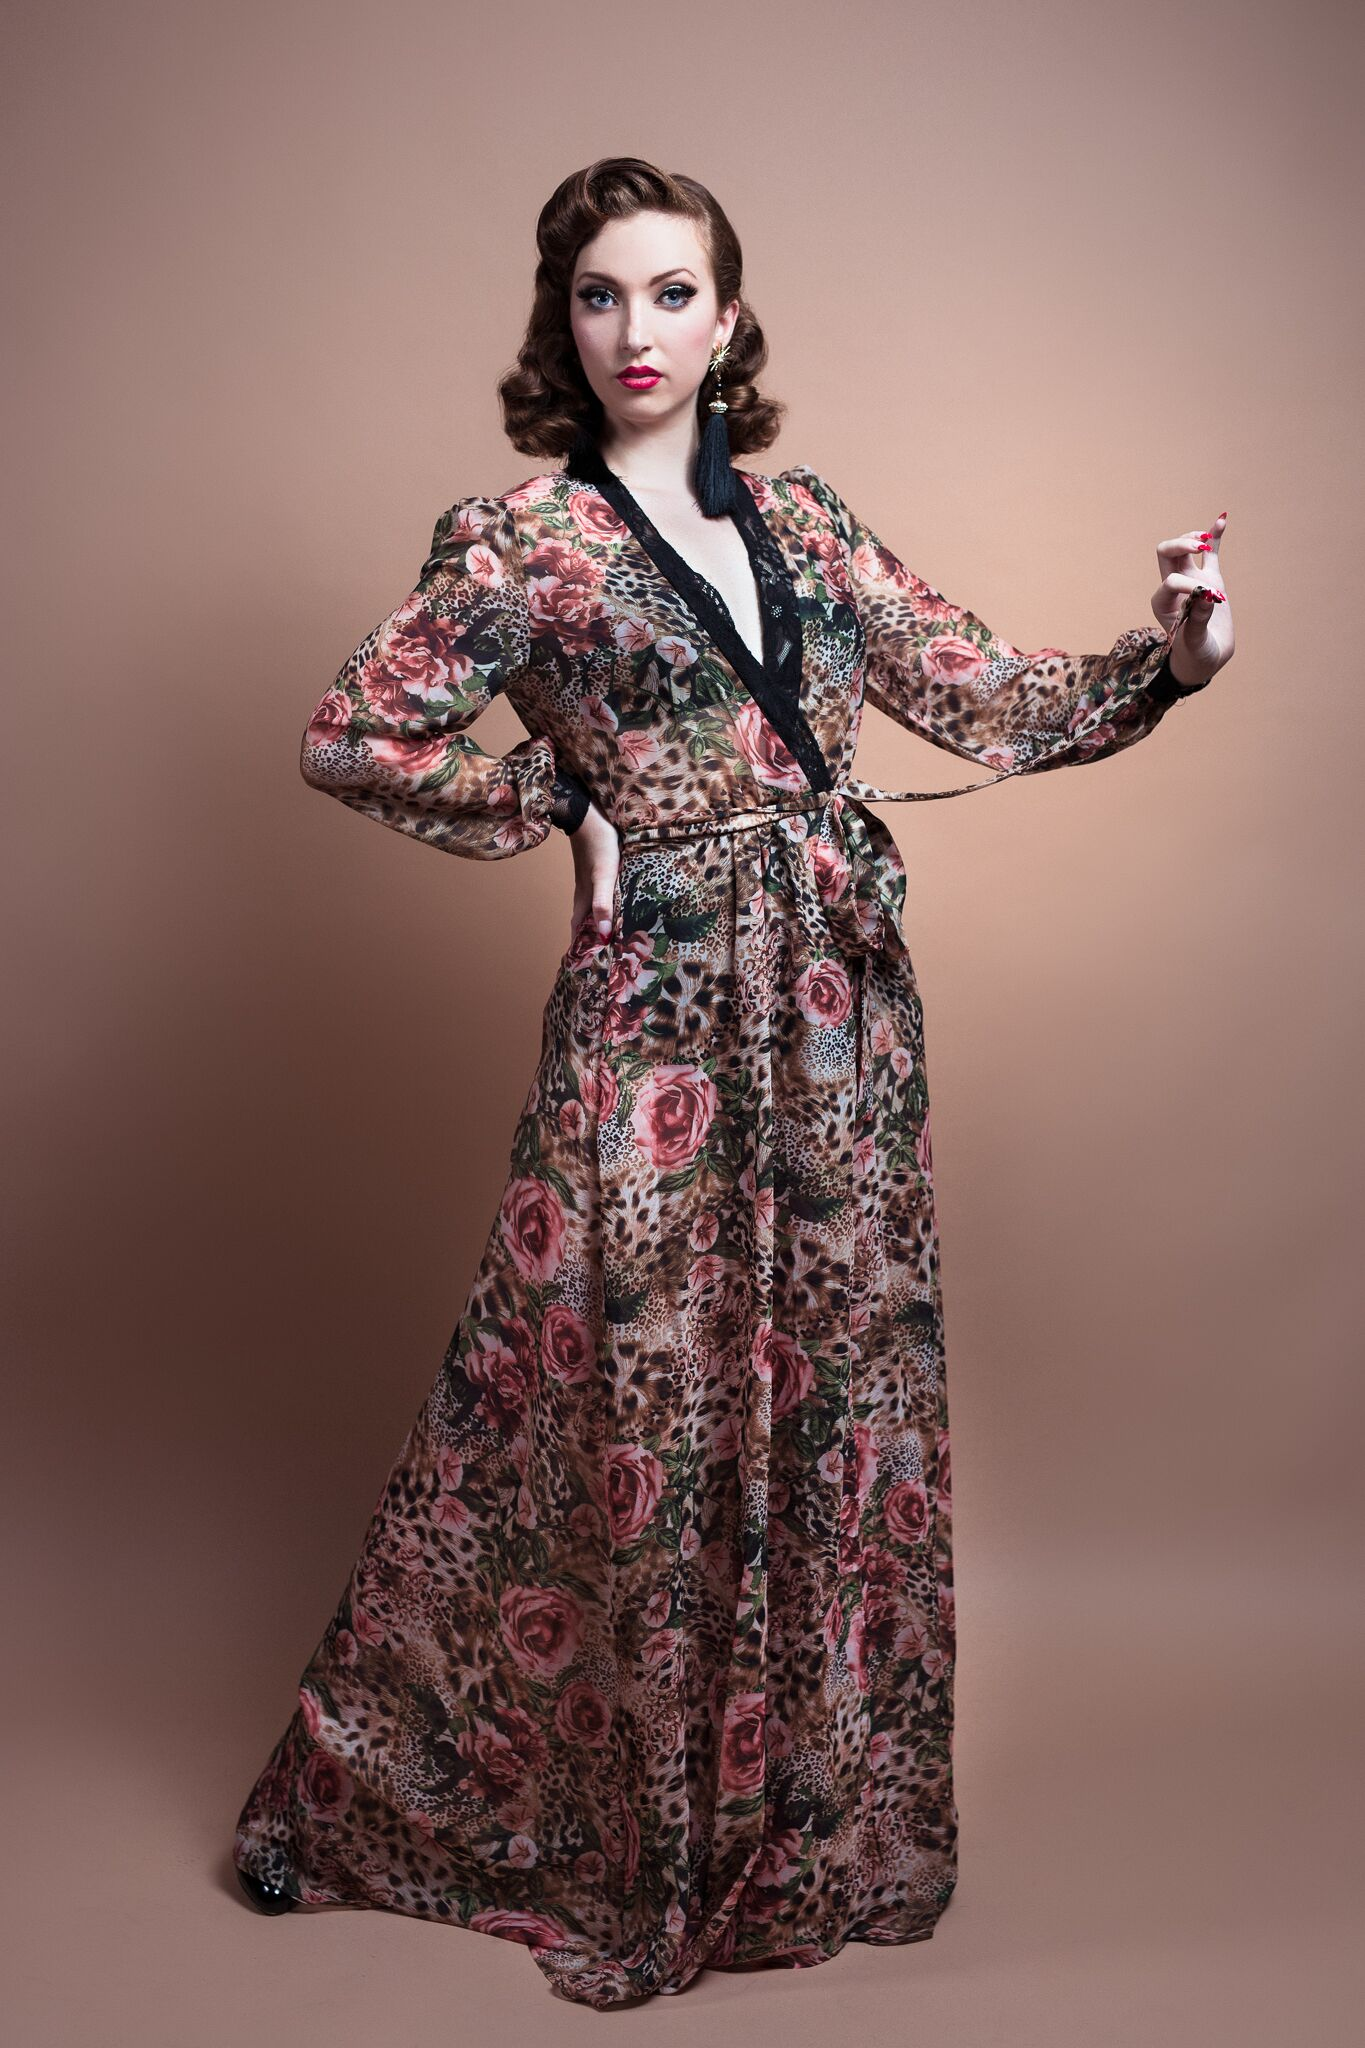 Sheer Glamour Dressing Gown  Leopard Print -  $179 - This 1940's inspired sheer peignoir is a special feature to this Boudoir Collection. Made out of a unique leopard and rose print polyester chiffon…this piece is both fierce and feminine.The peignoir drapes beautifully around the body and is excellent for glamour shoots, backstage elegance or just simply wanting to bring a bit of drama into your home.The cuffs and the front bodice are highlighted with a touch of black lace.              Citrine is wearing a Size 10 in the Sheer Glamour Dressing Gown